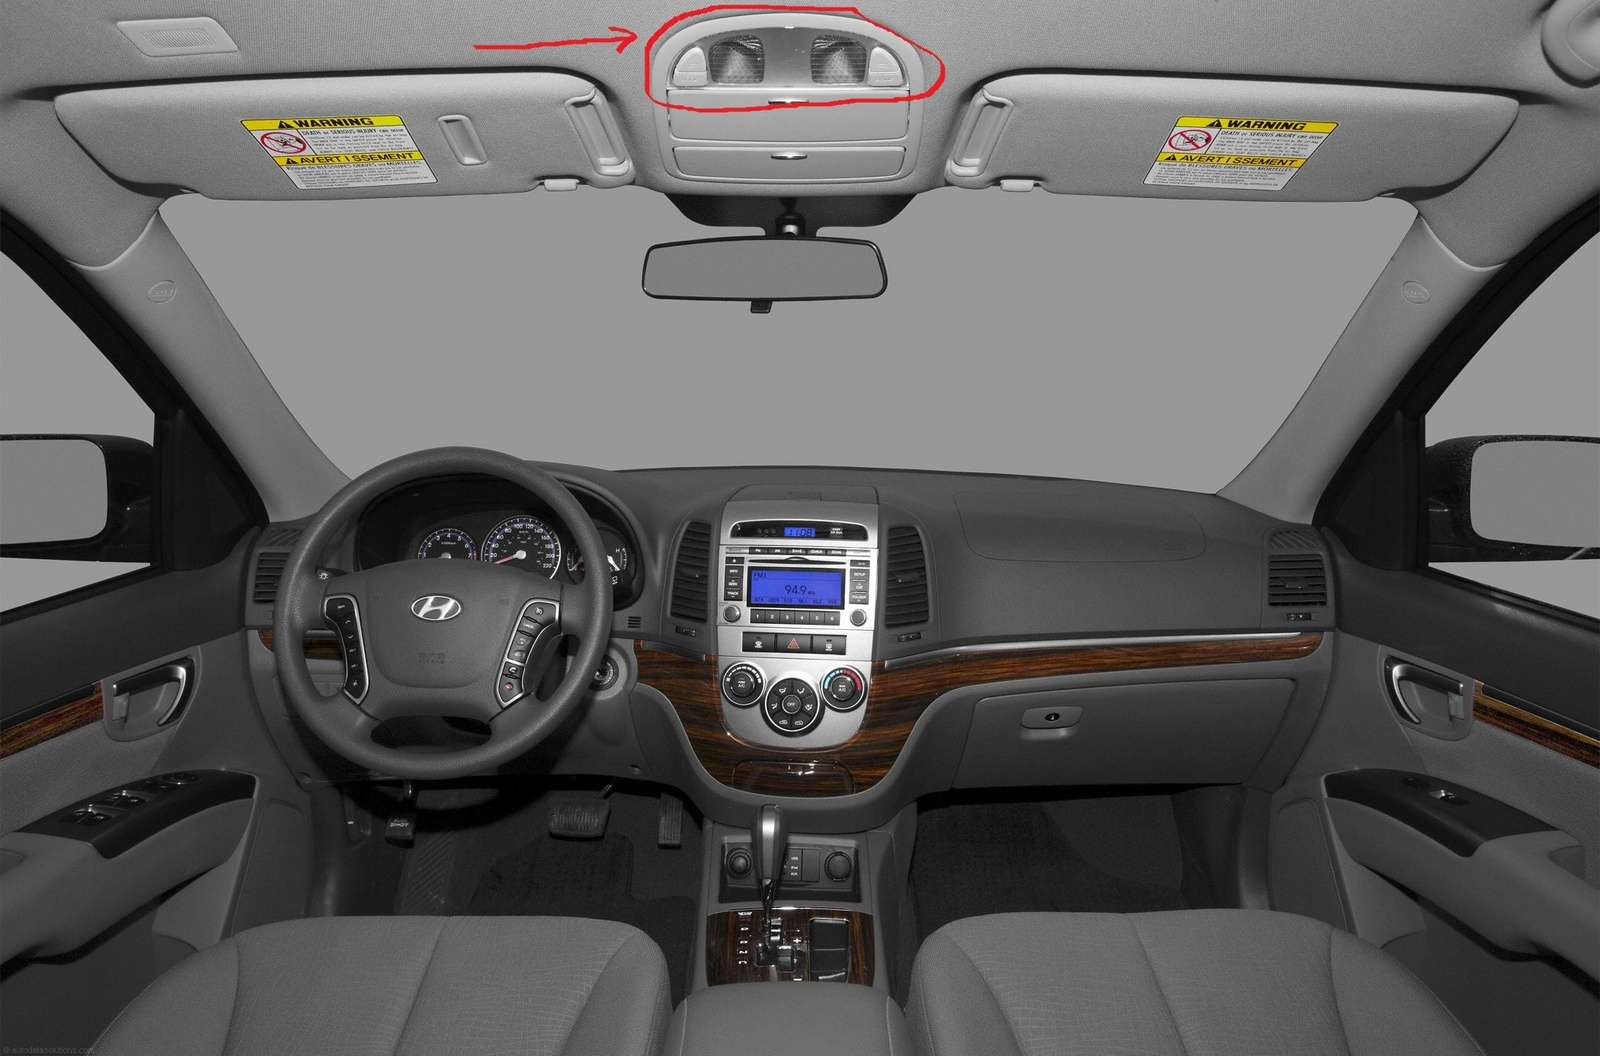 hight resolution of how do i turn on the interior lights to go on automatically for my hyundai santa fe